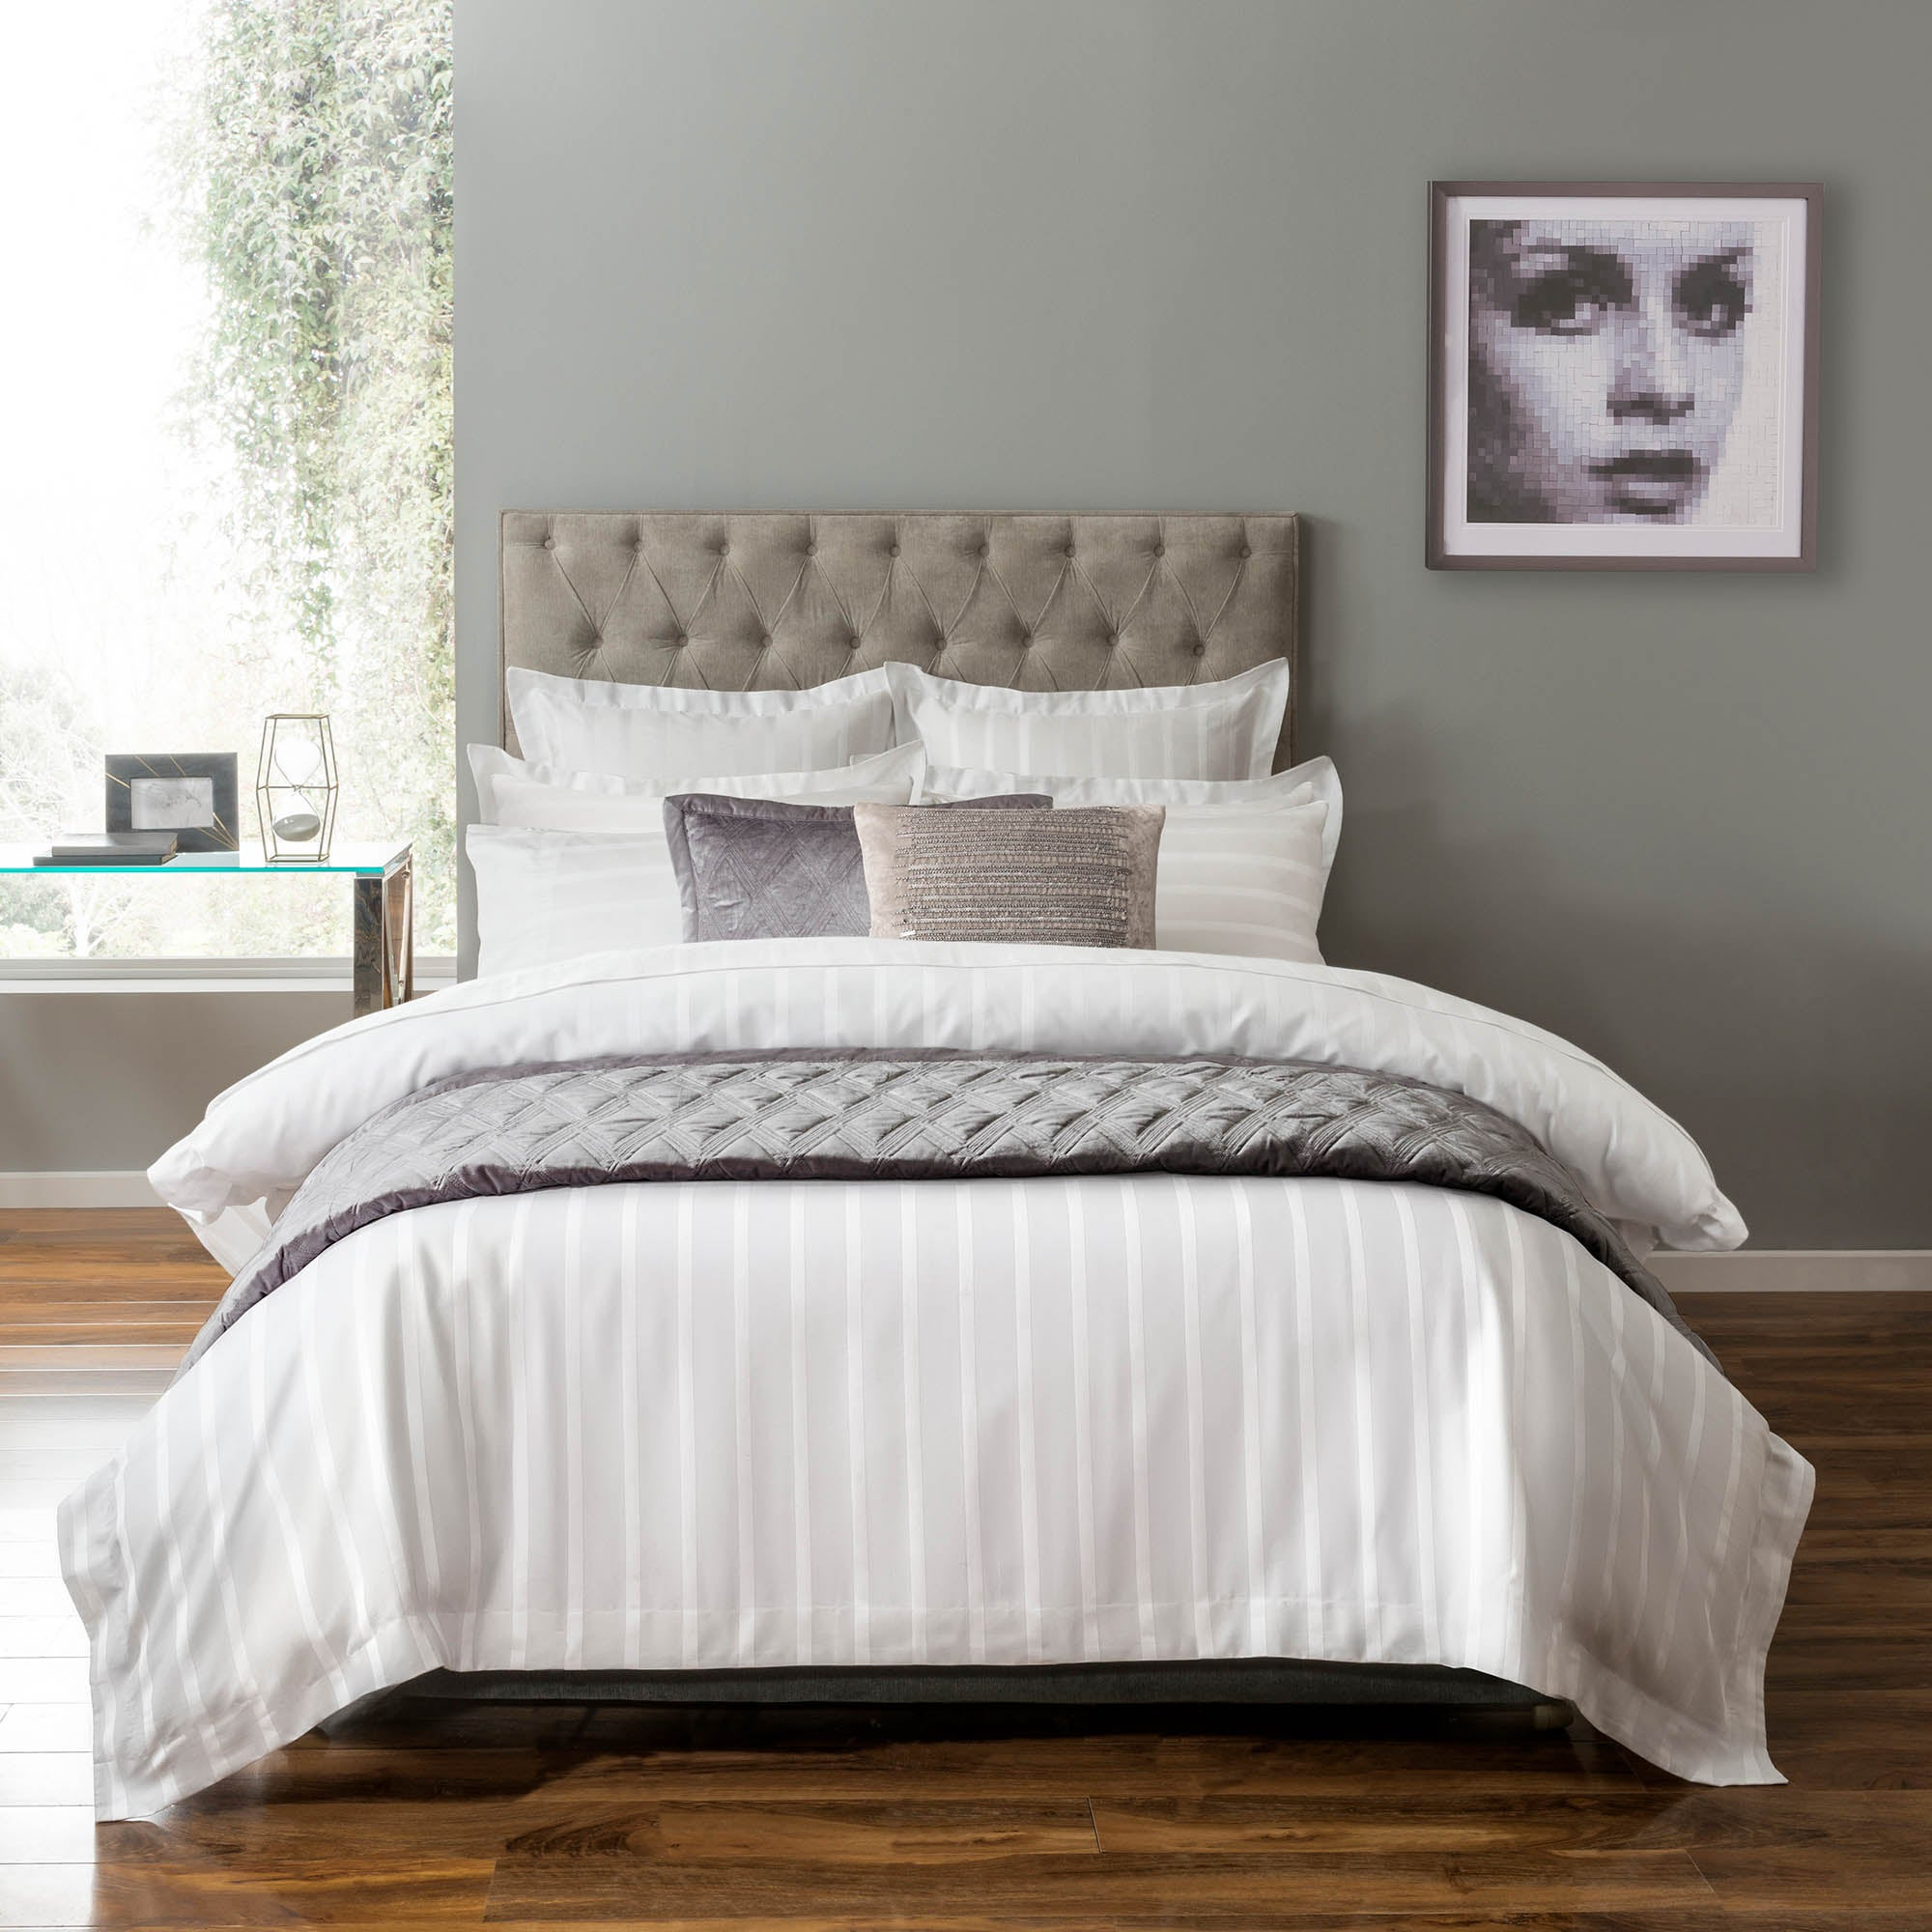 5A Fifth Avenue Herringbone 300 Thread Count White Bed Linen Collection